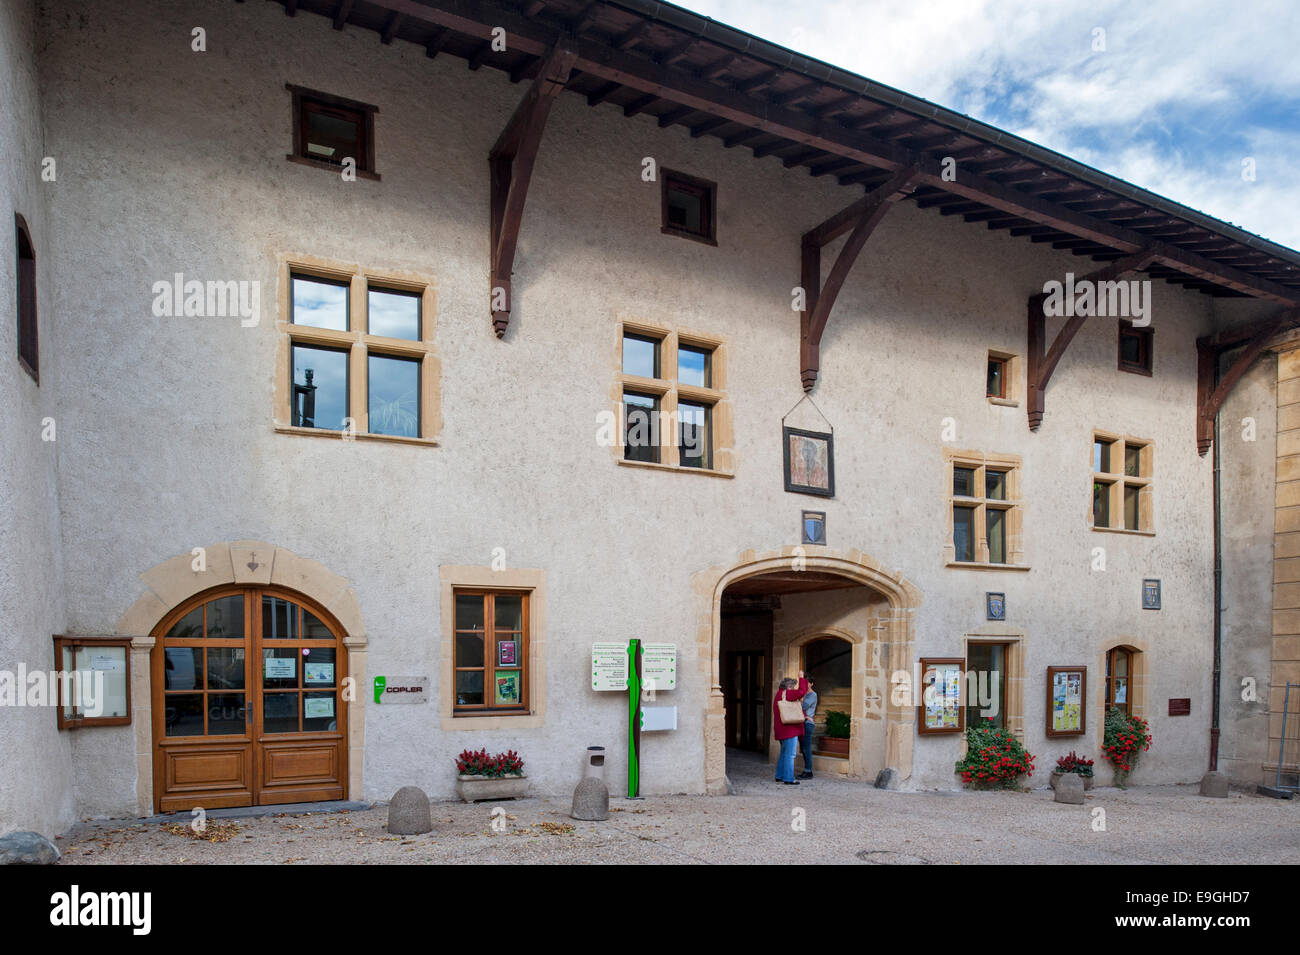 The medieval inn auberge de la Tête Noire at Saint-Symphorien-de-Lay, Rhône-Alpes, France, Europe - Stock Image